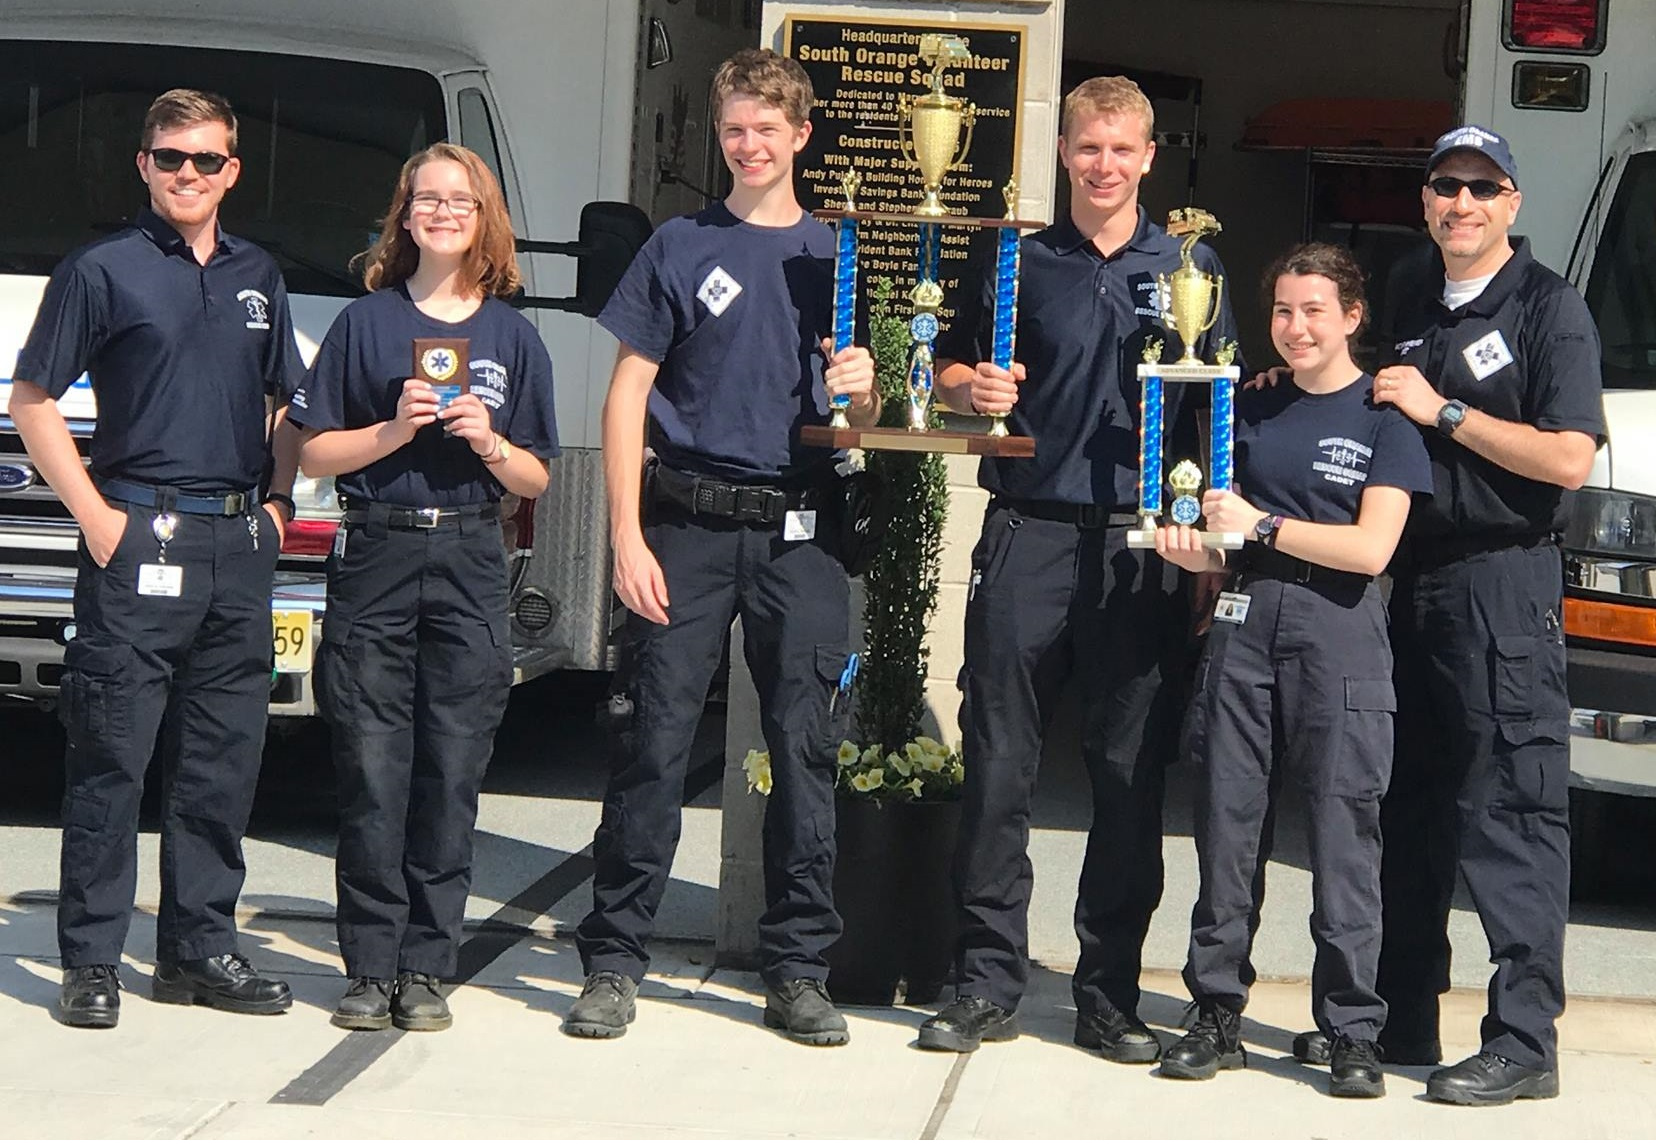 The South Orange Rescue Squad Cadet Team shows off their First Place Advanced Team Trophy and Grand